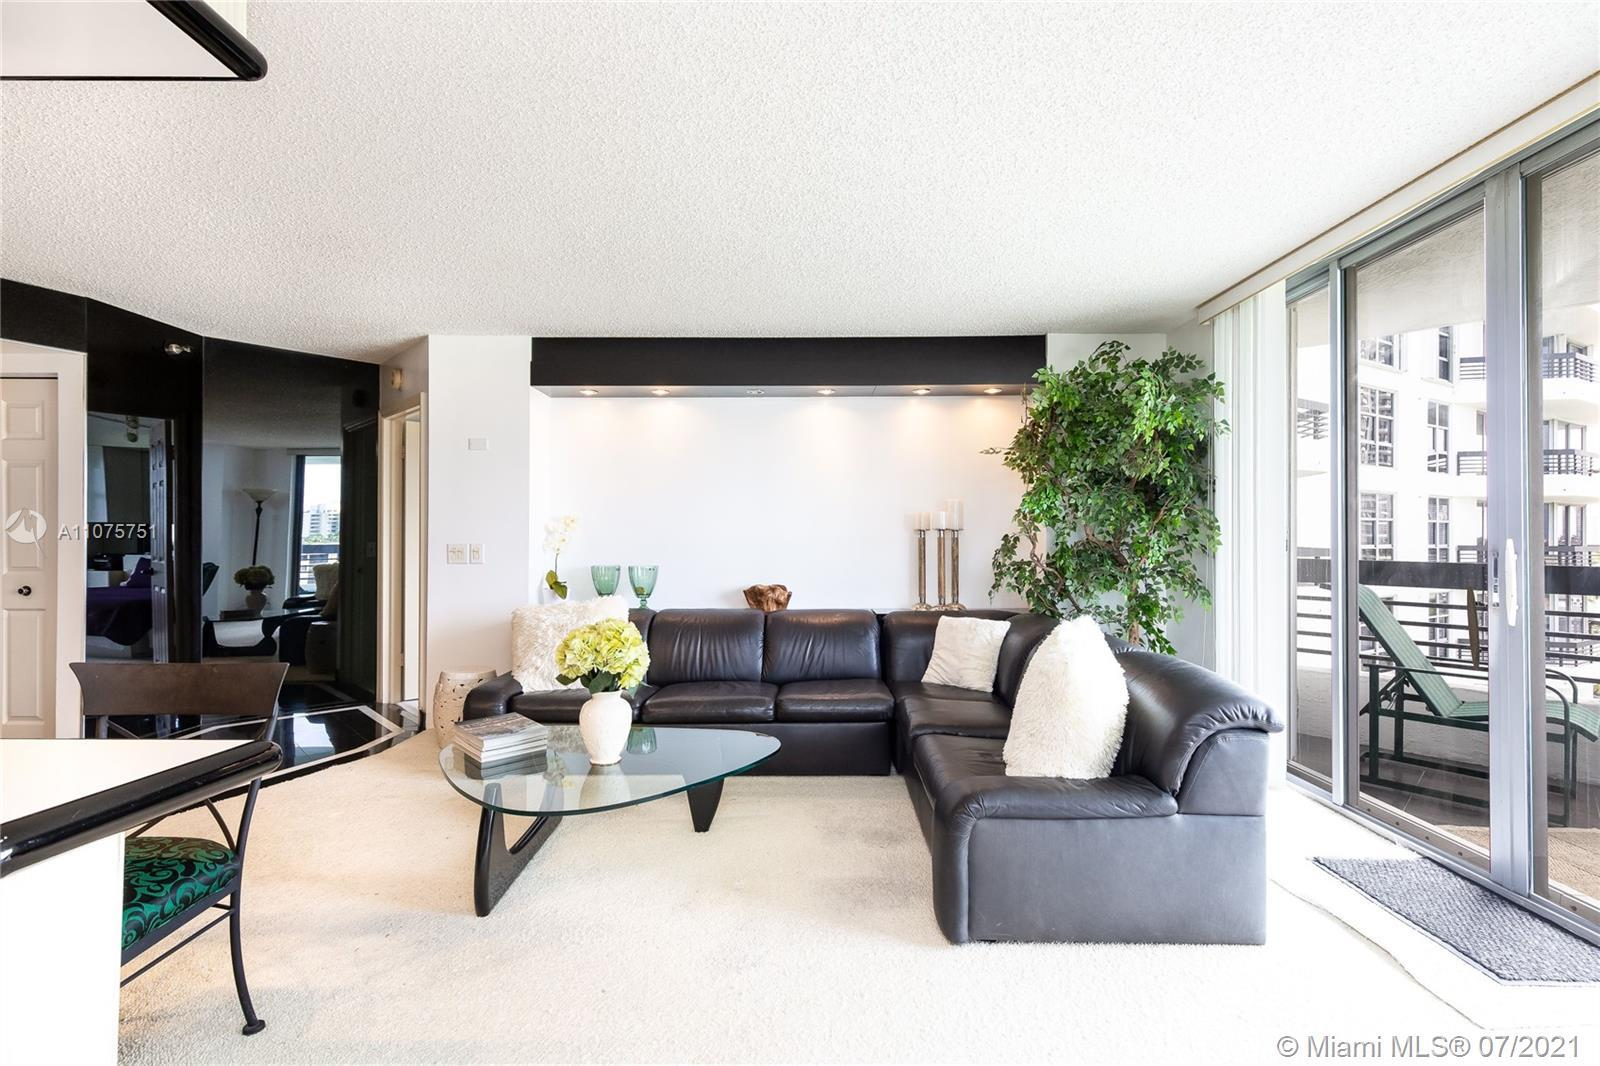 Well decorated corner unit located in a prestigious gated community with lobby concierge 24/7 valet